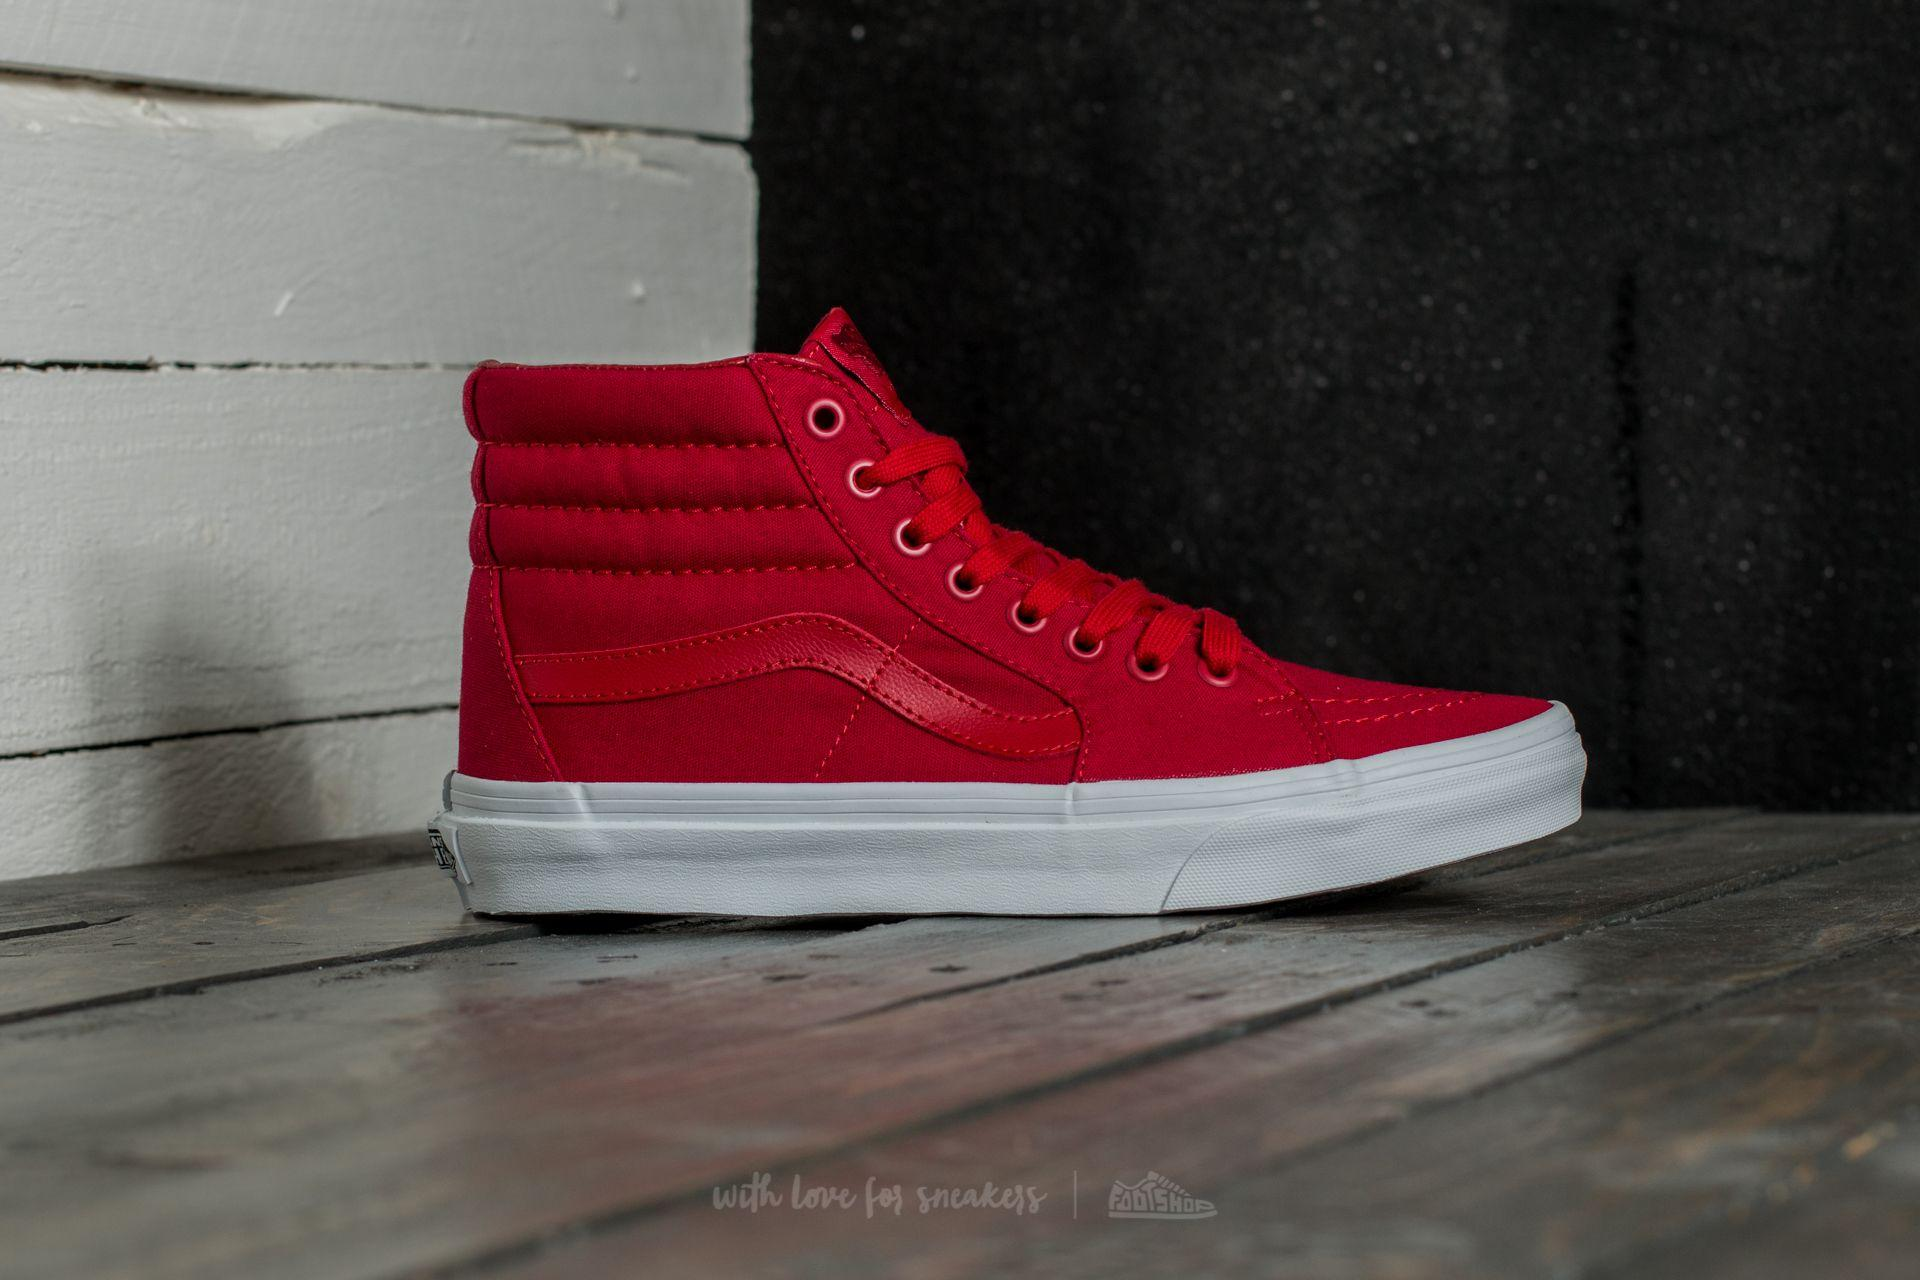 d7497a42d13 Lyst - Vans Sk8-hi (mono Canvas) Chili Pepper  True White in Red for Men